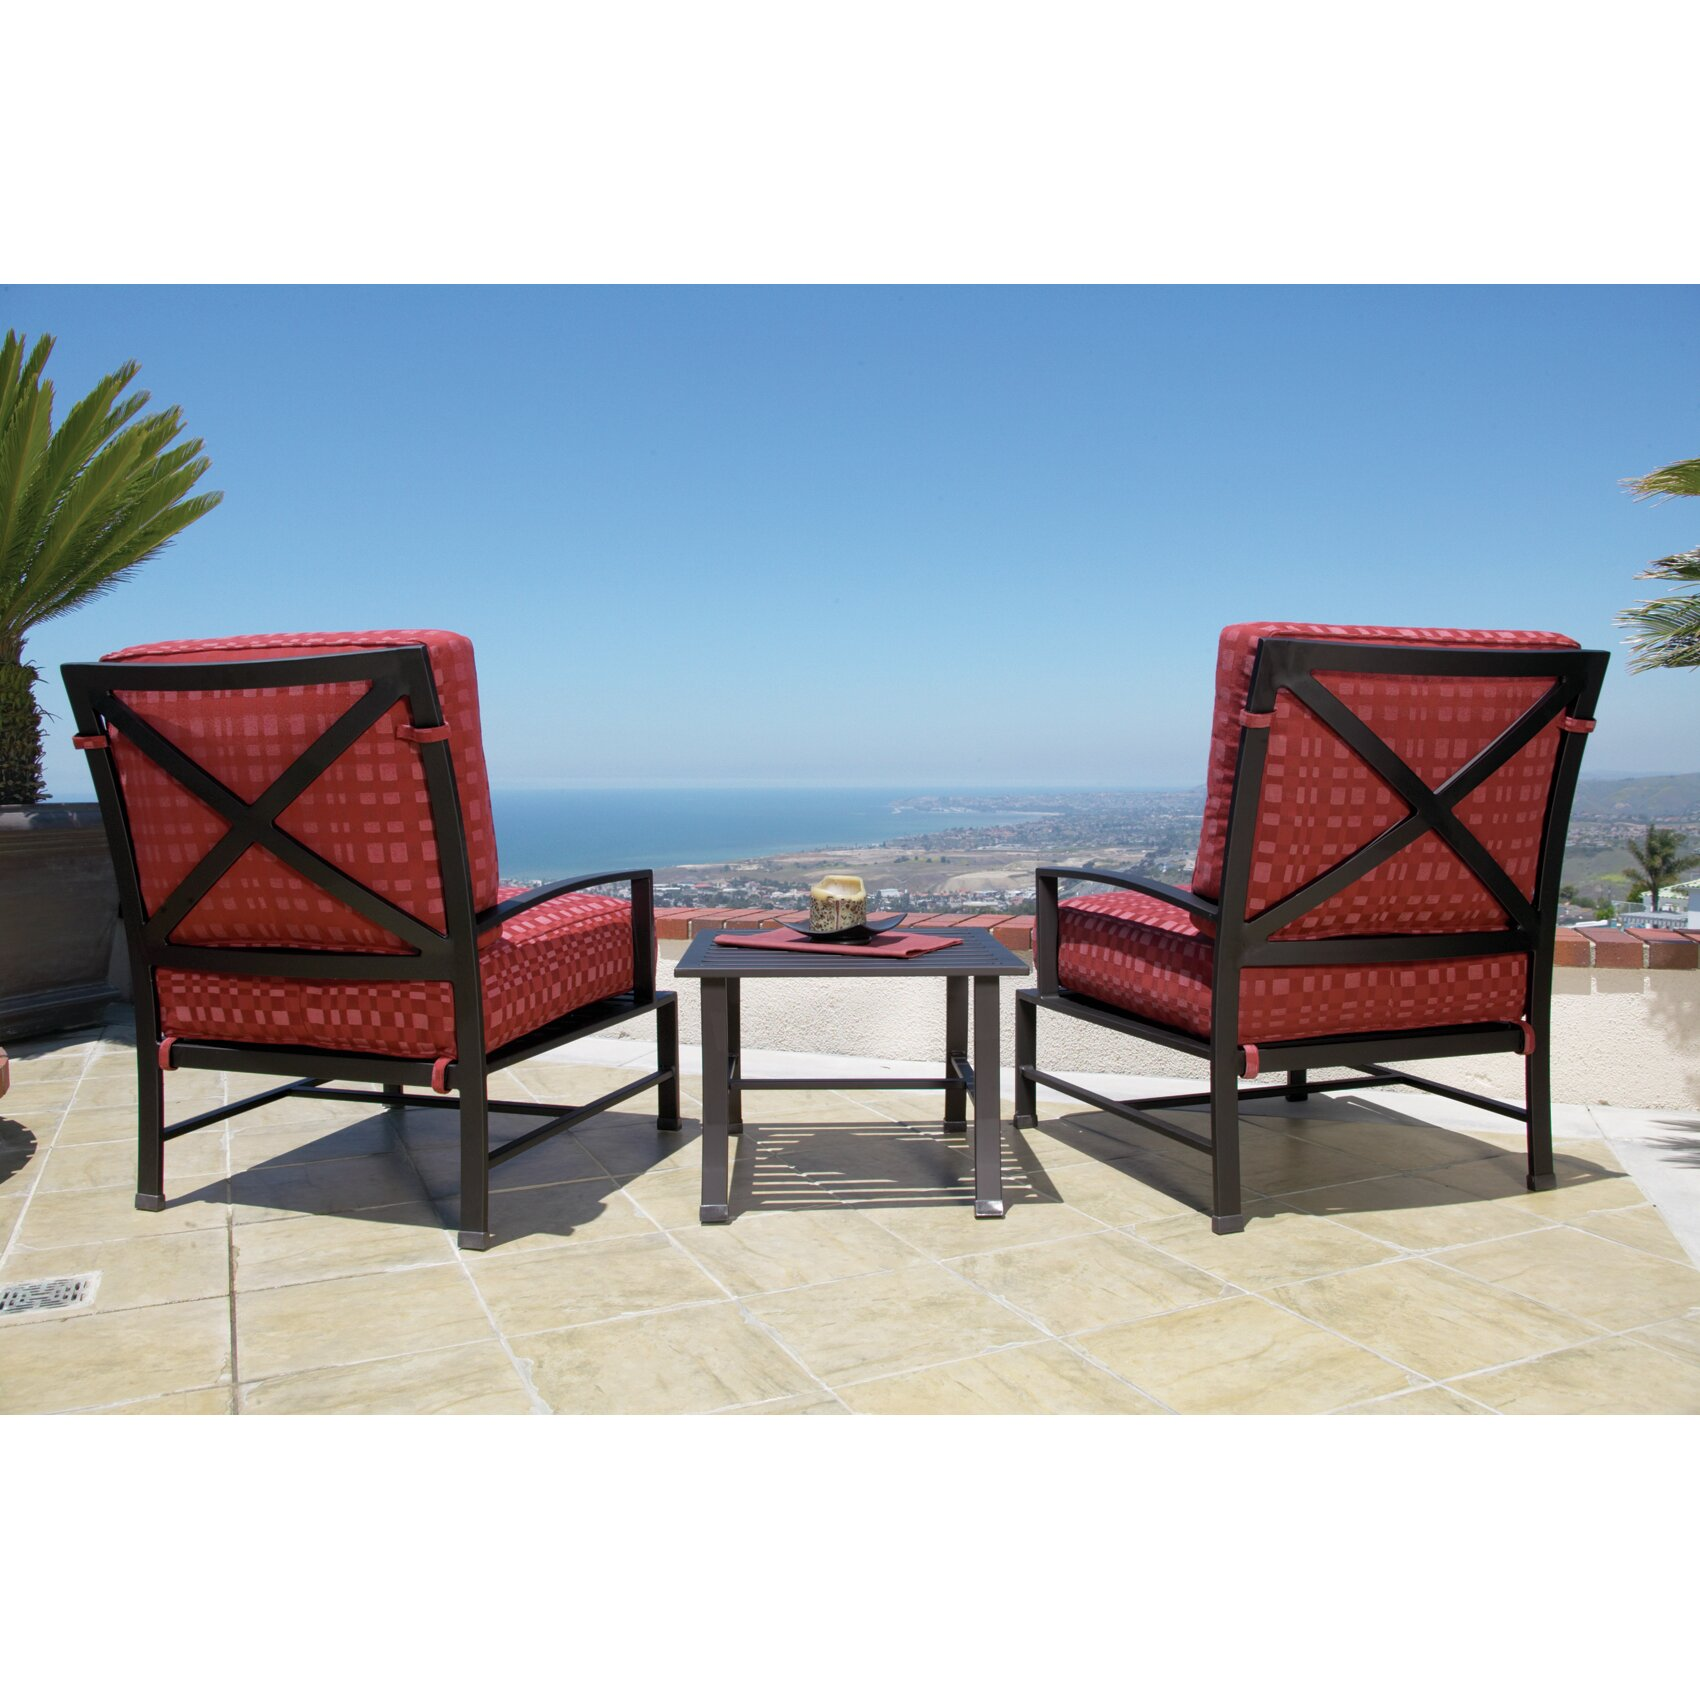 La Jolla Chair Rentals La Jolla Tufted Chair Nativa Interiors King And Throne Chair Rental